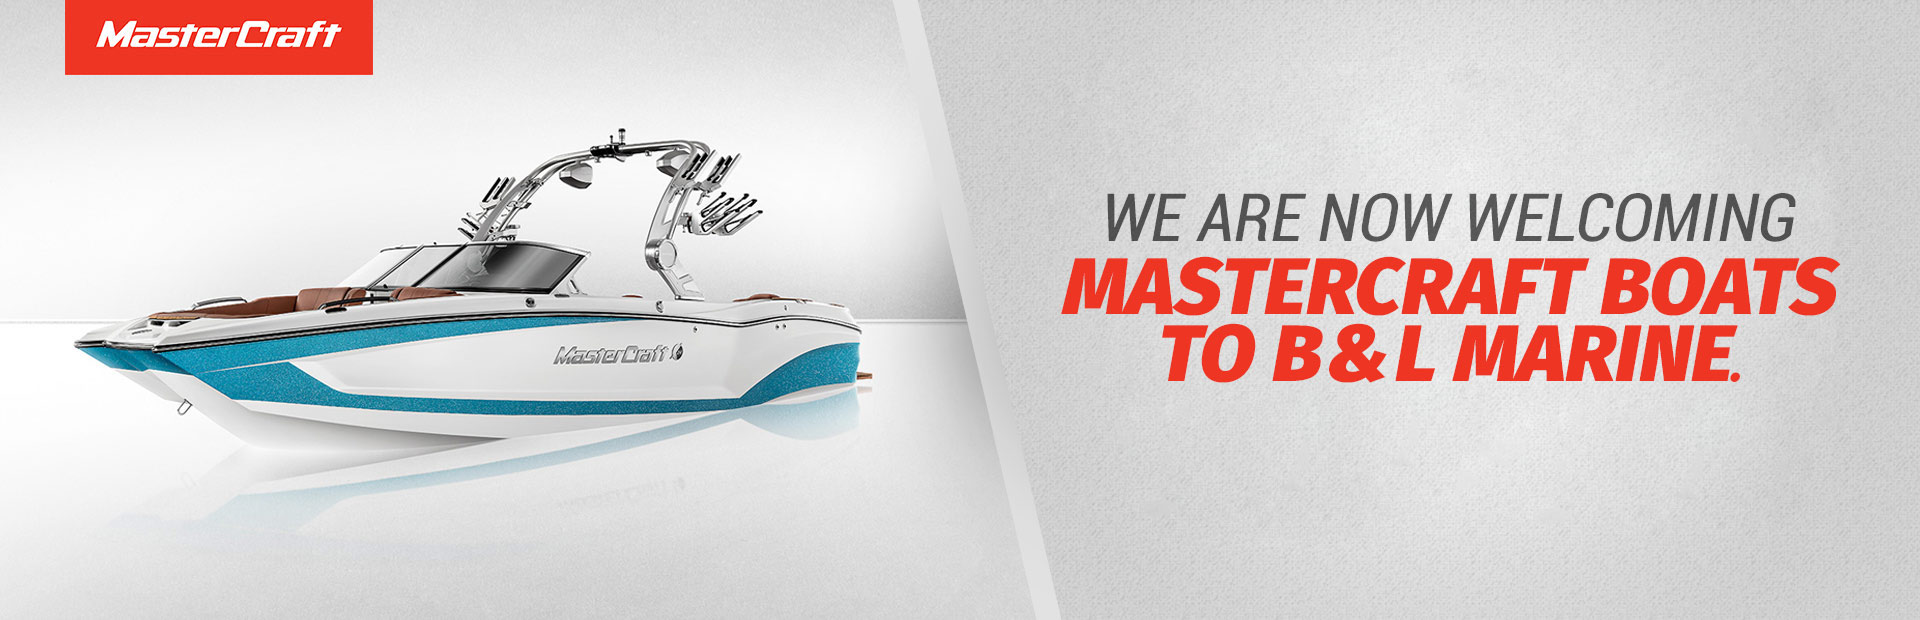 We are now welcoming MasterCraft boats to B & L Marine.